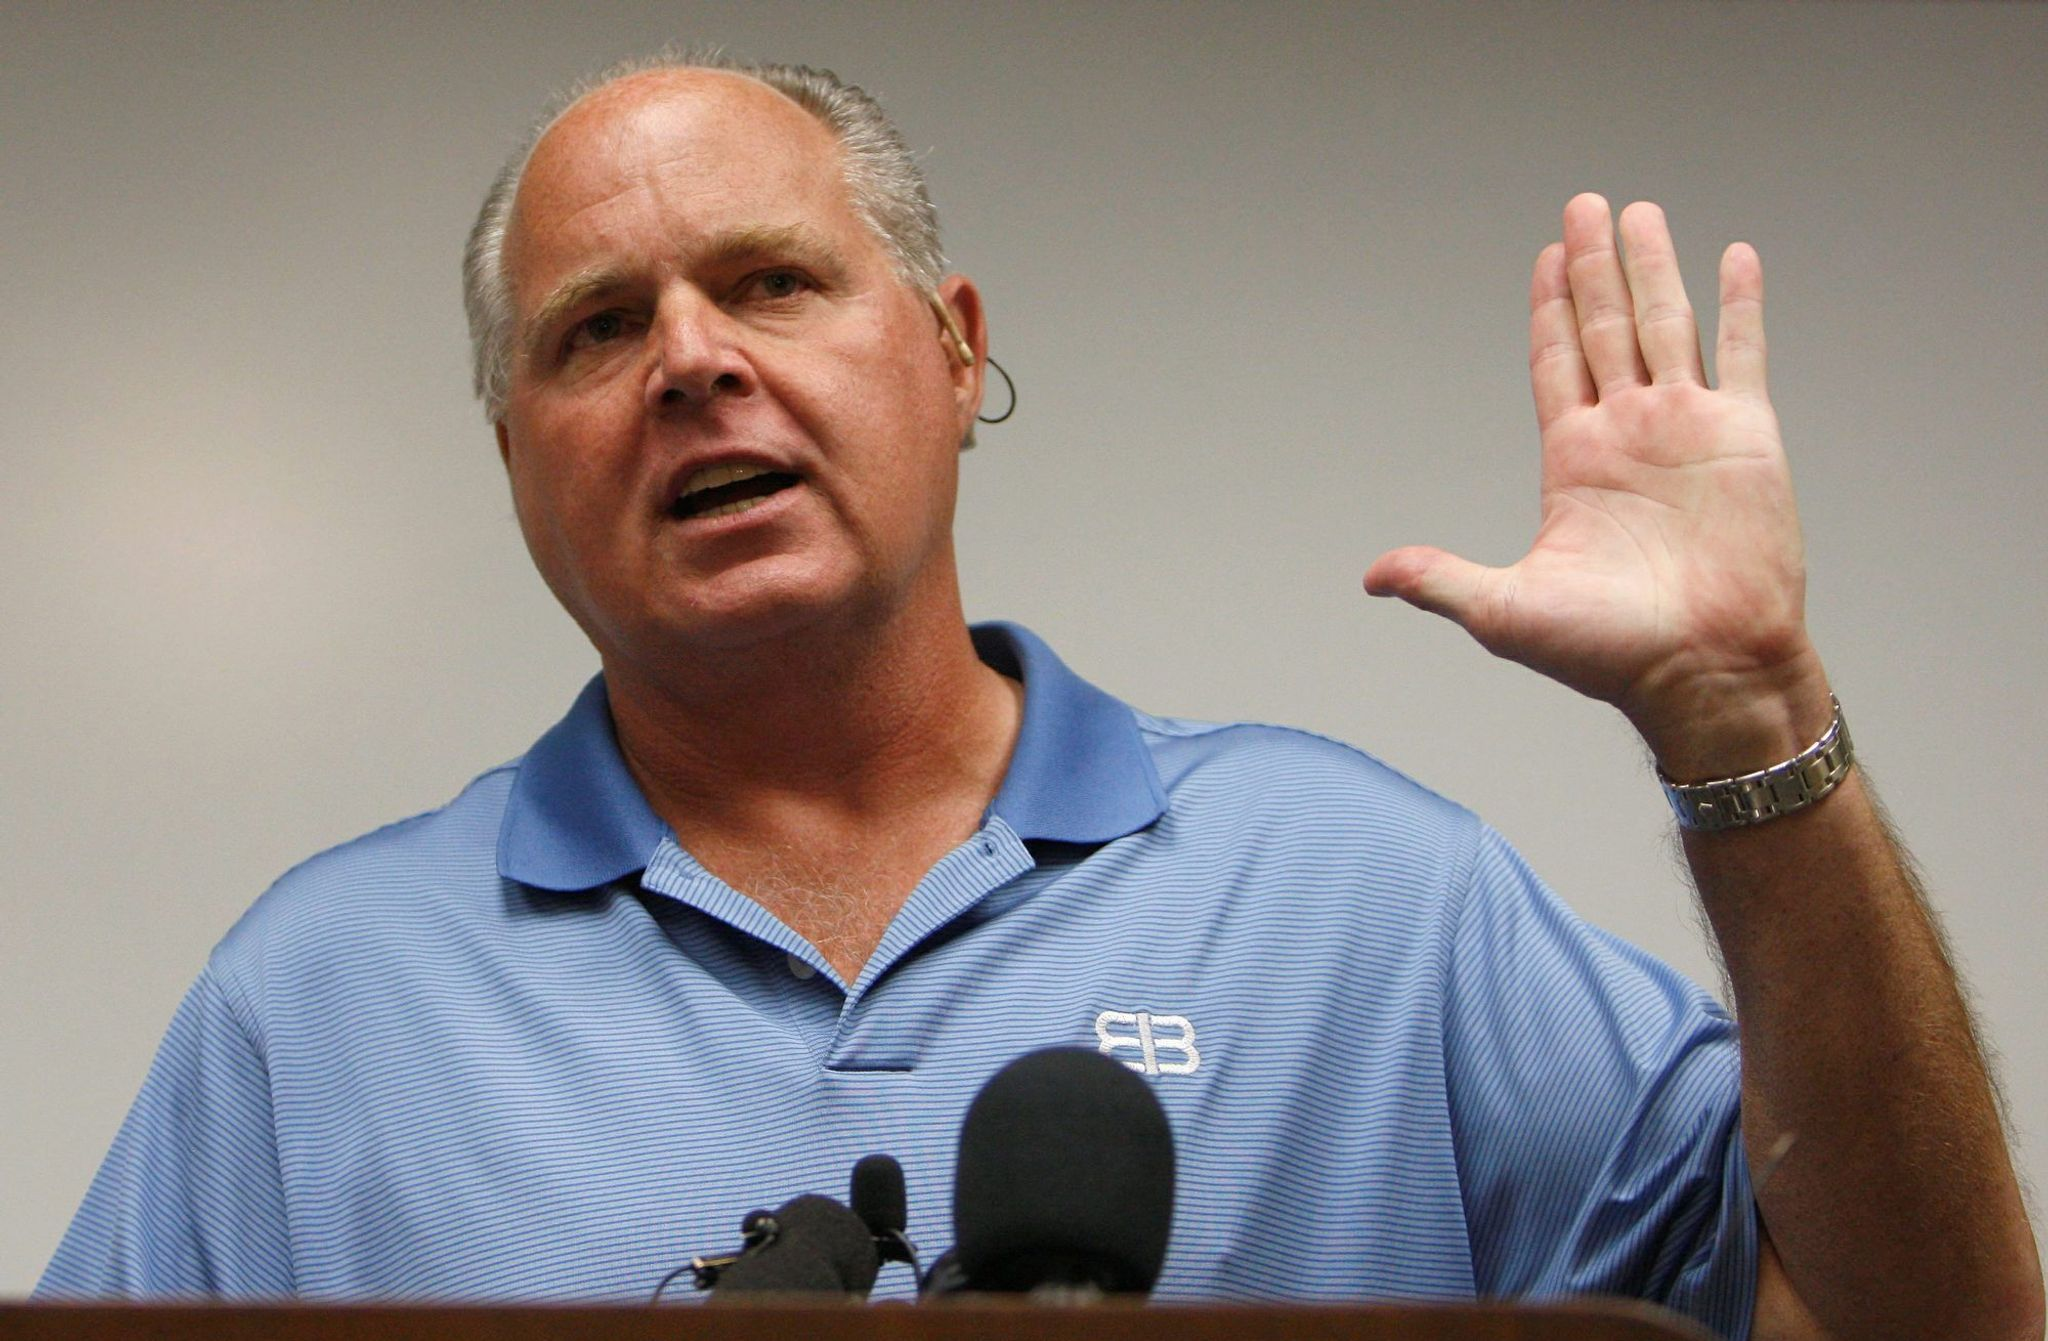 Limbaugh conducts experiment on Trump fans: 'This is exactly what I was expecting'